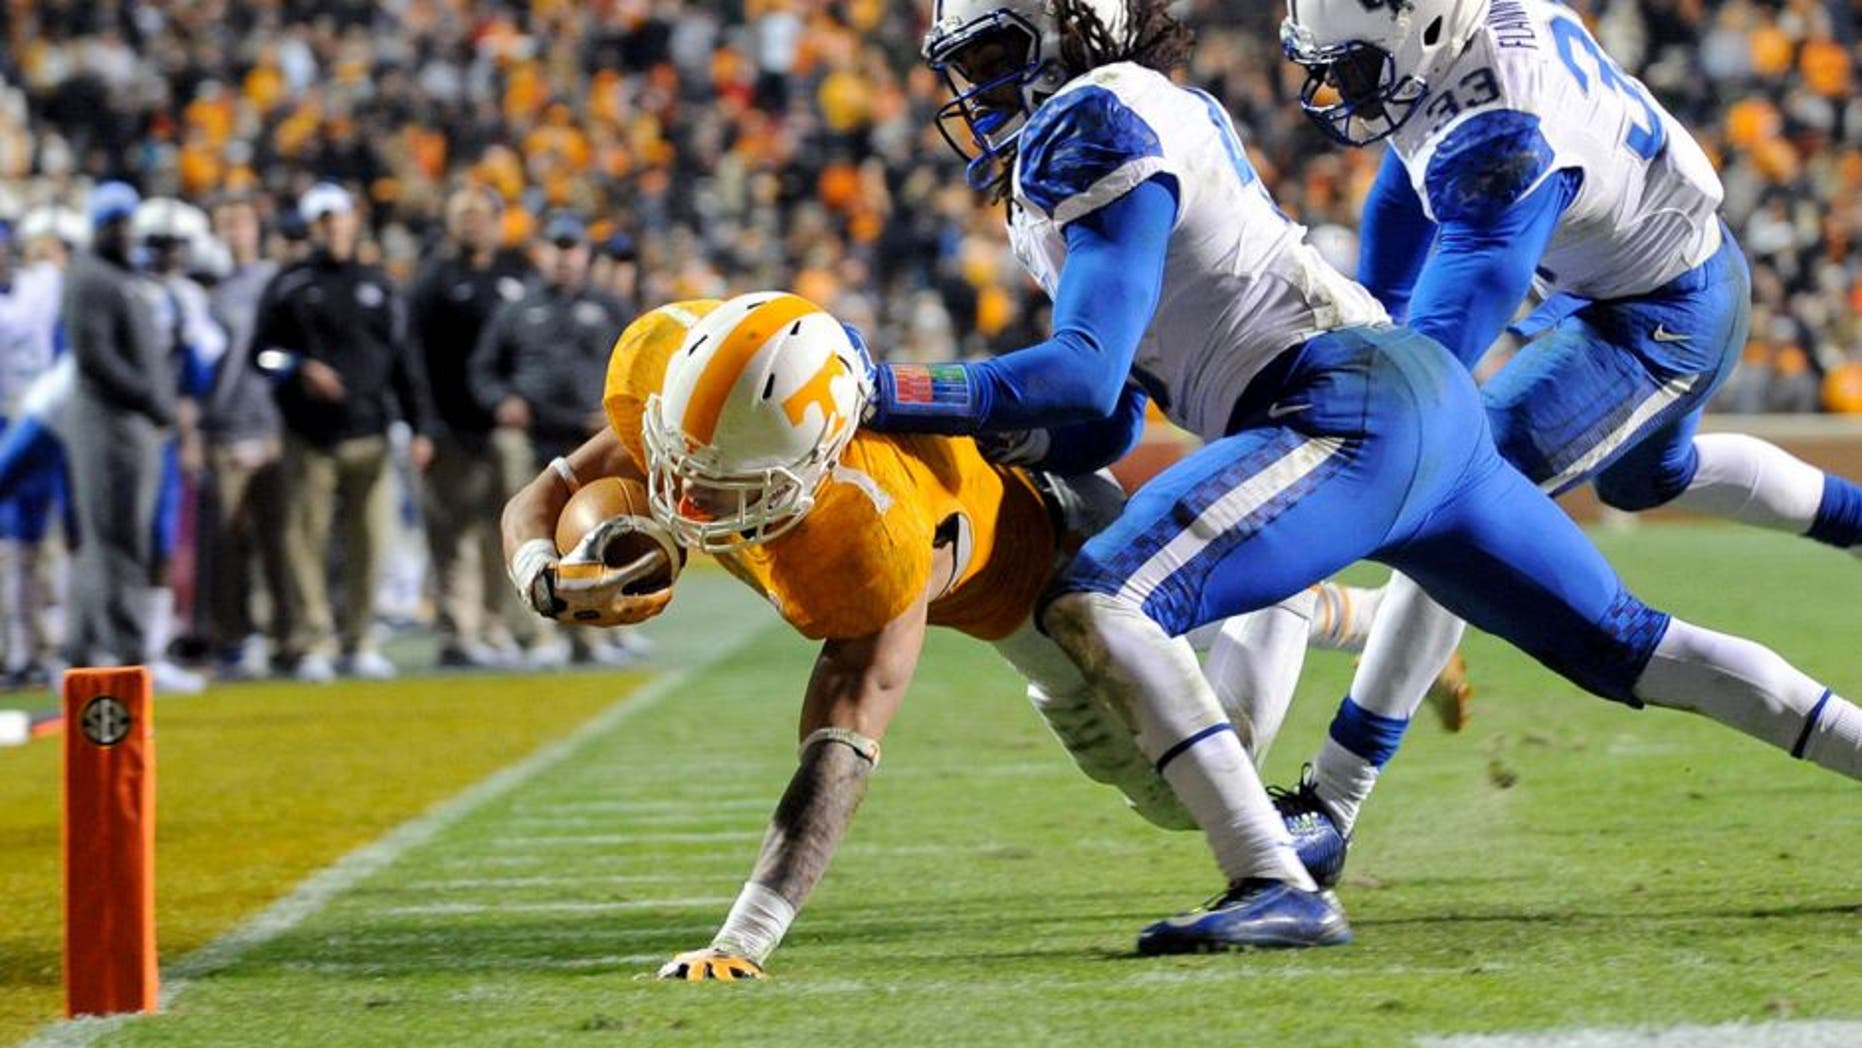 Nov 15, 2014; Knoxville, TN, USA; Tennessee Volunteers running back Jalen Hurd (1) dives for a touchdown against the Kentucky Wildcats during the third quarter at Neyland Stadium. Mandatory Credit: Randy Sartin-USA TODAY Sports